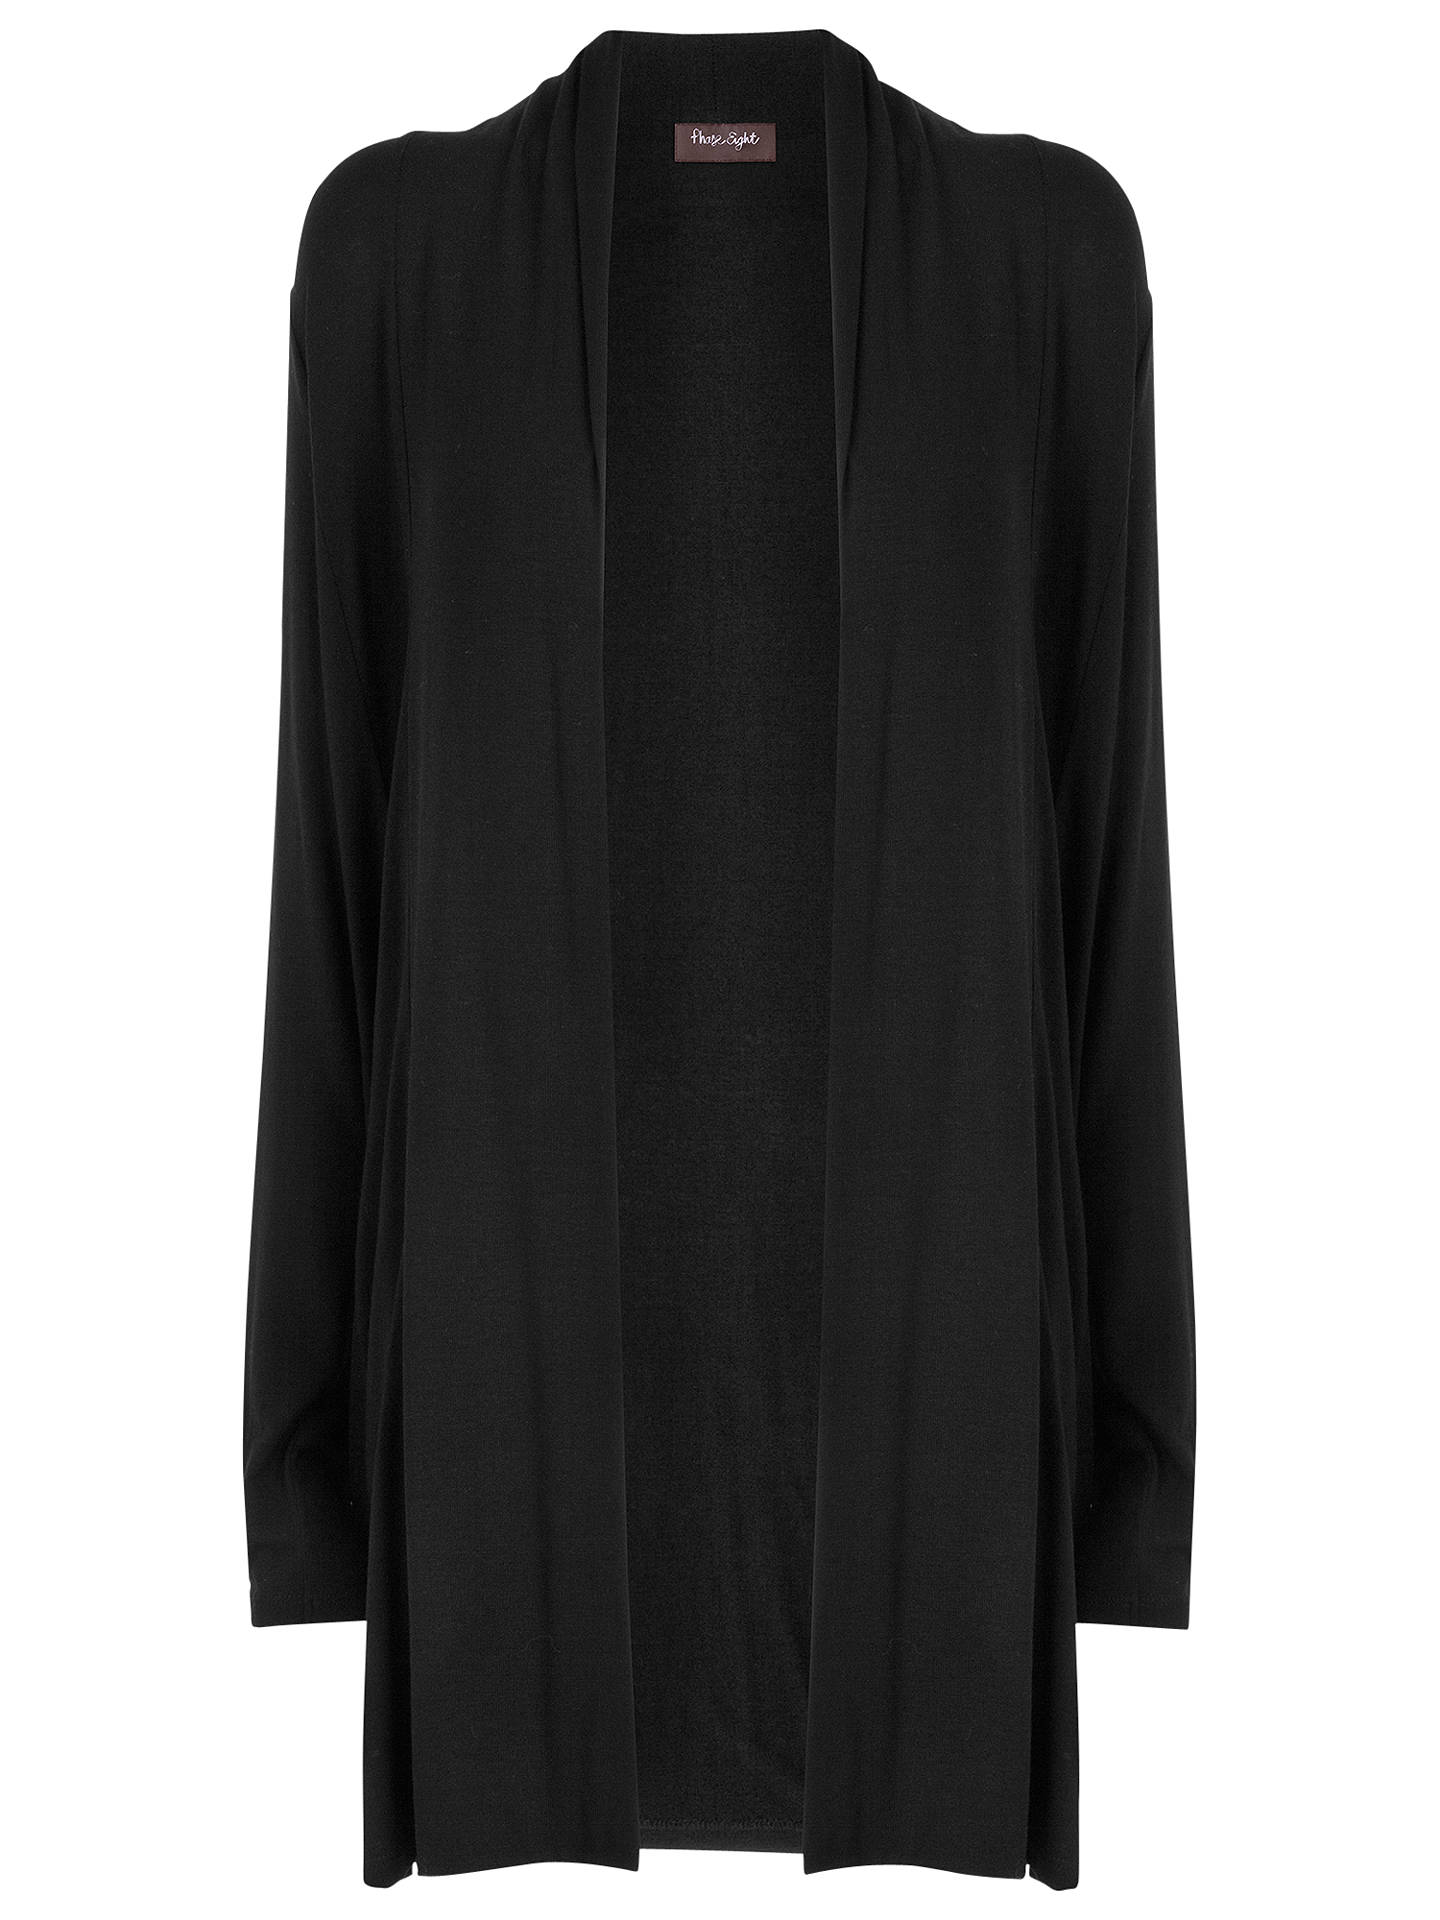 BuyPhase Eight Christie Cardigan, Black, 8 Online at johnlewis.com